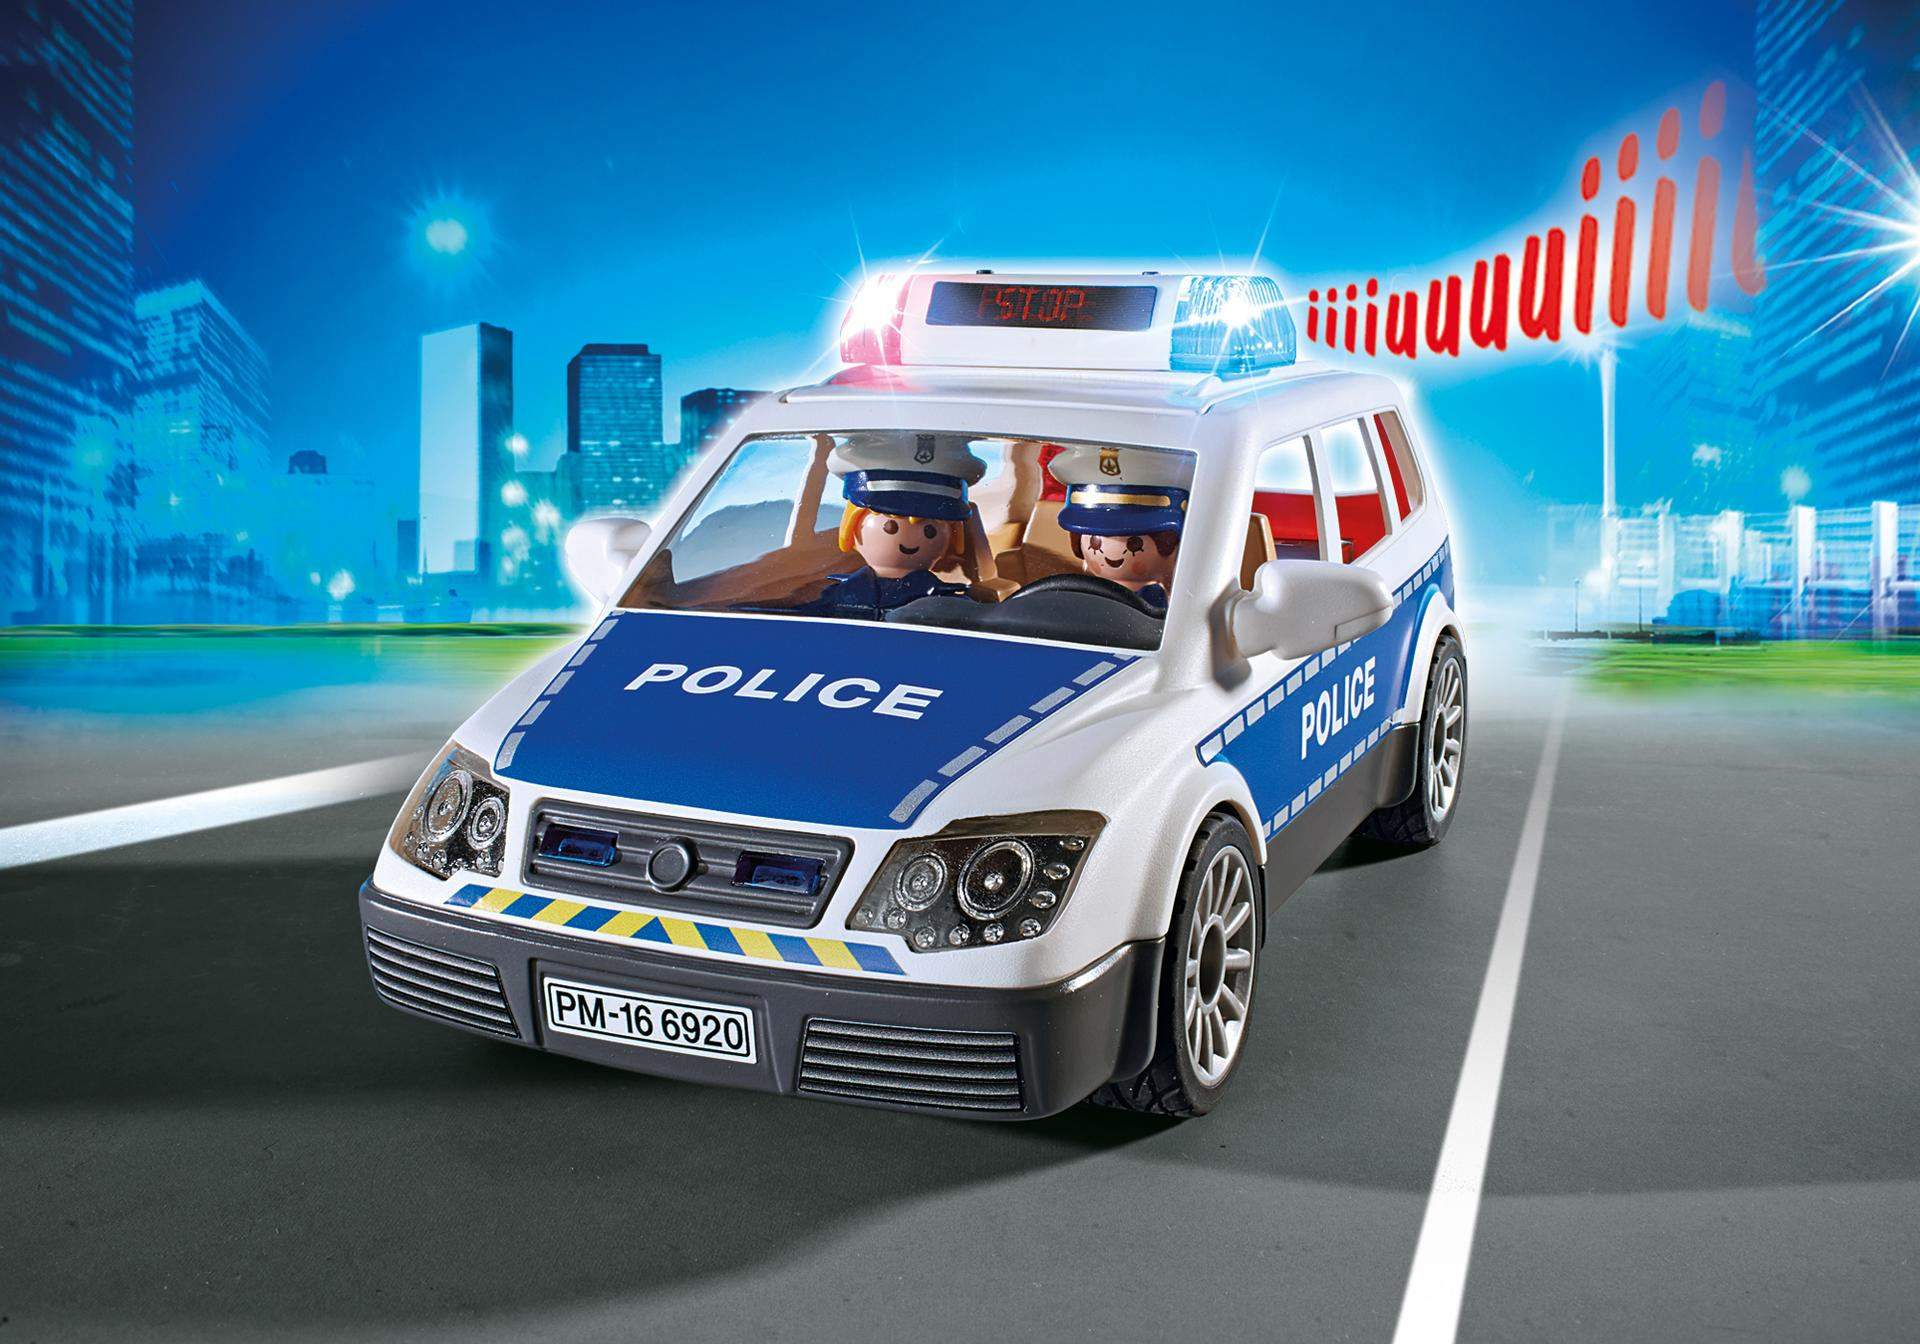 voiture de policiers avec gyrophare et sir ne 6920 playmobil france. Black Bedroom Furniture Sets. Home Design Ideas